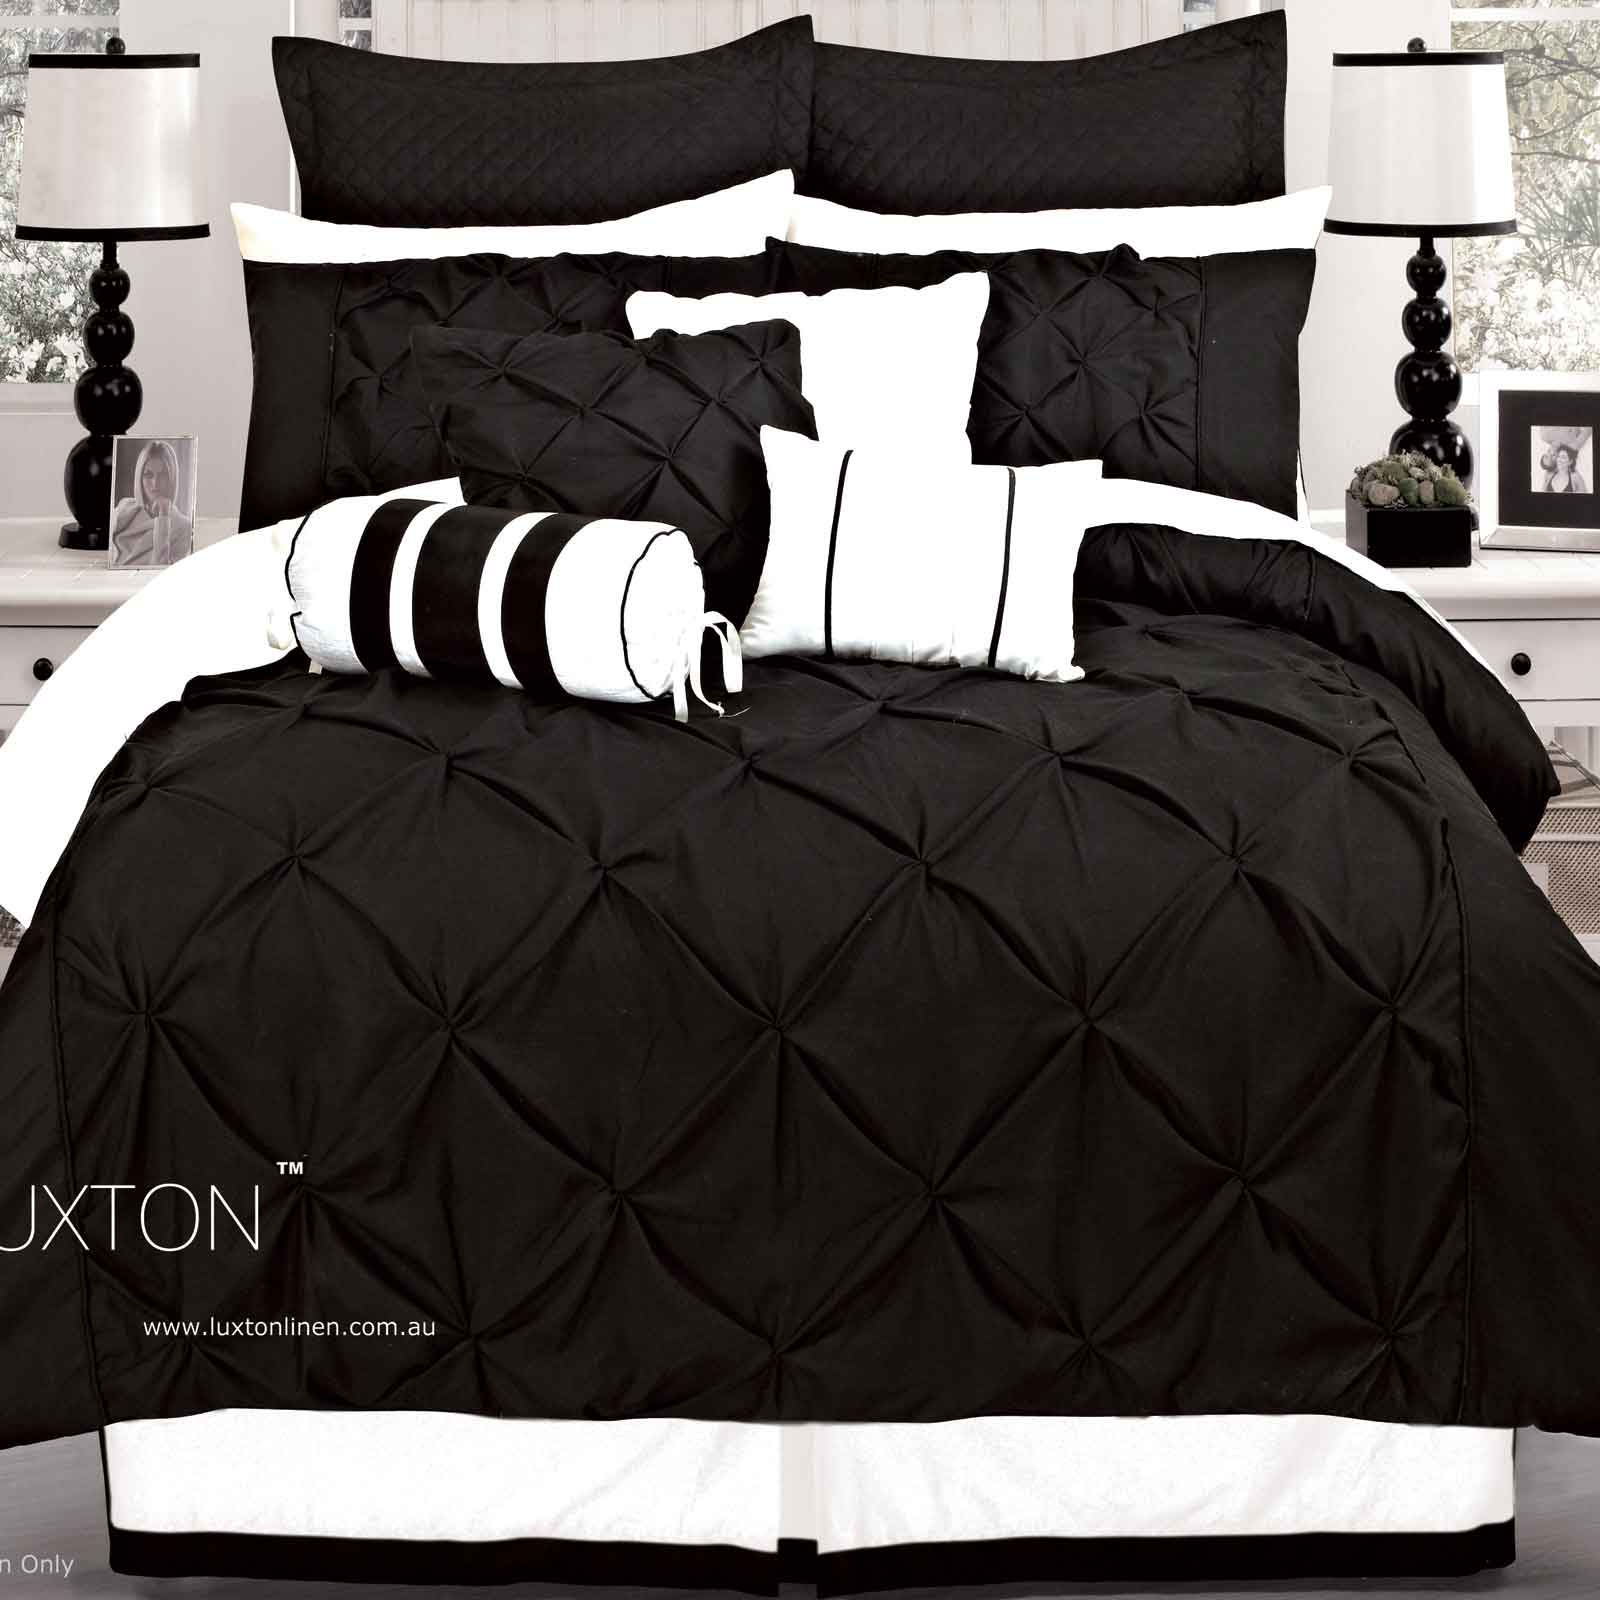 King Bed Duvet Cover Bed Covers King Size Bangdodo